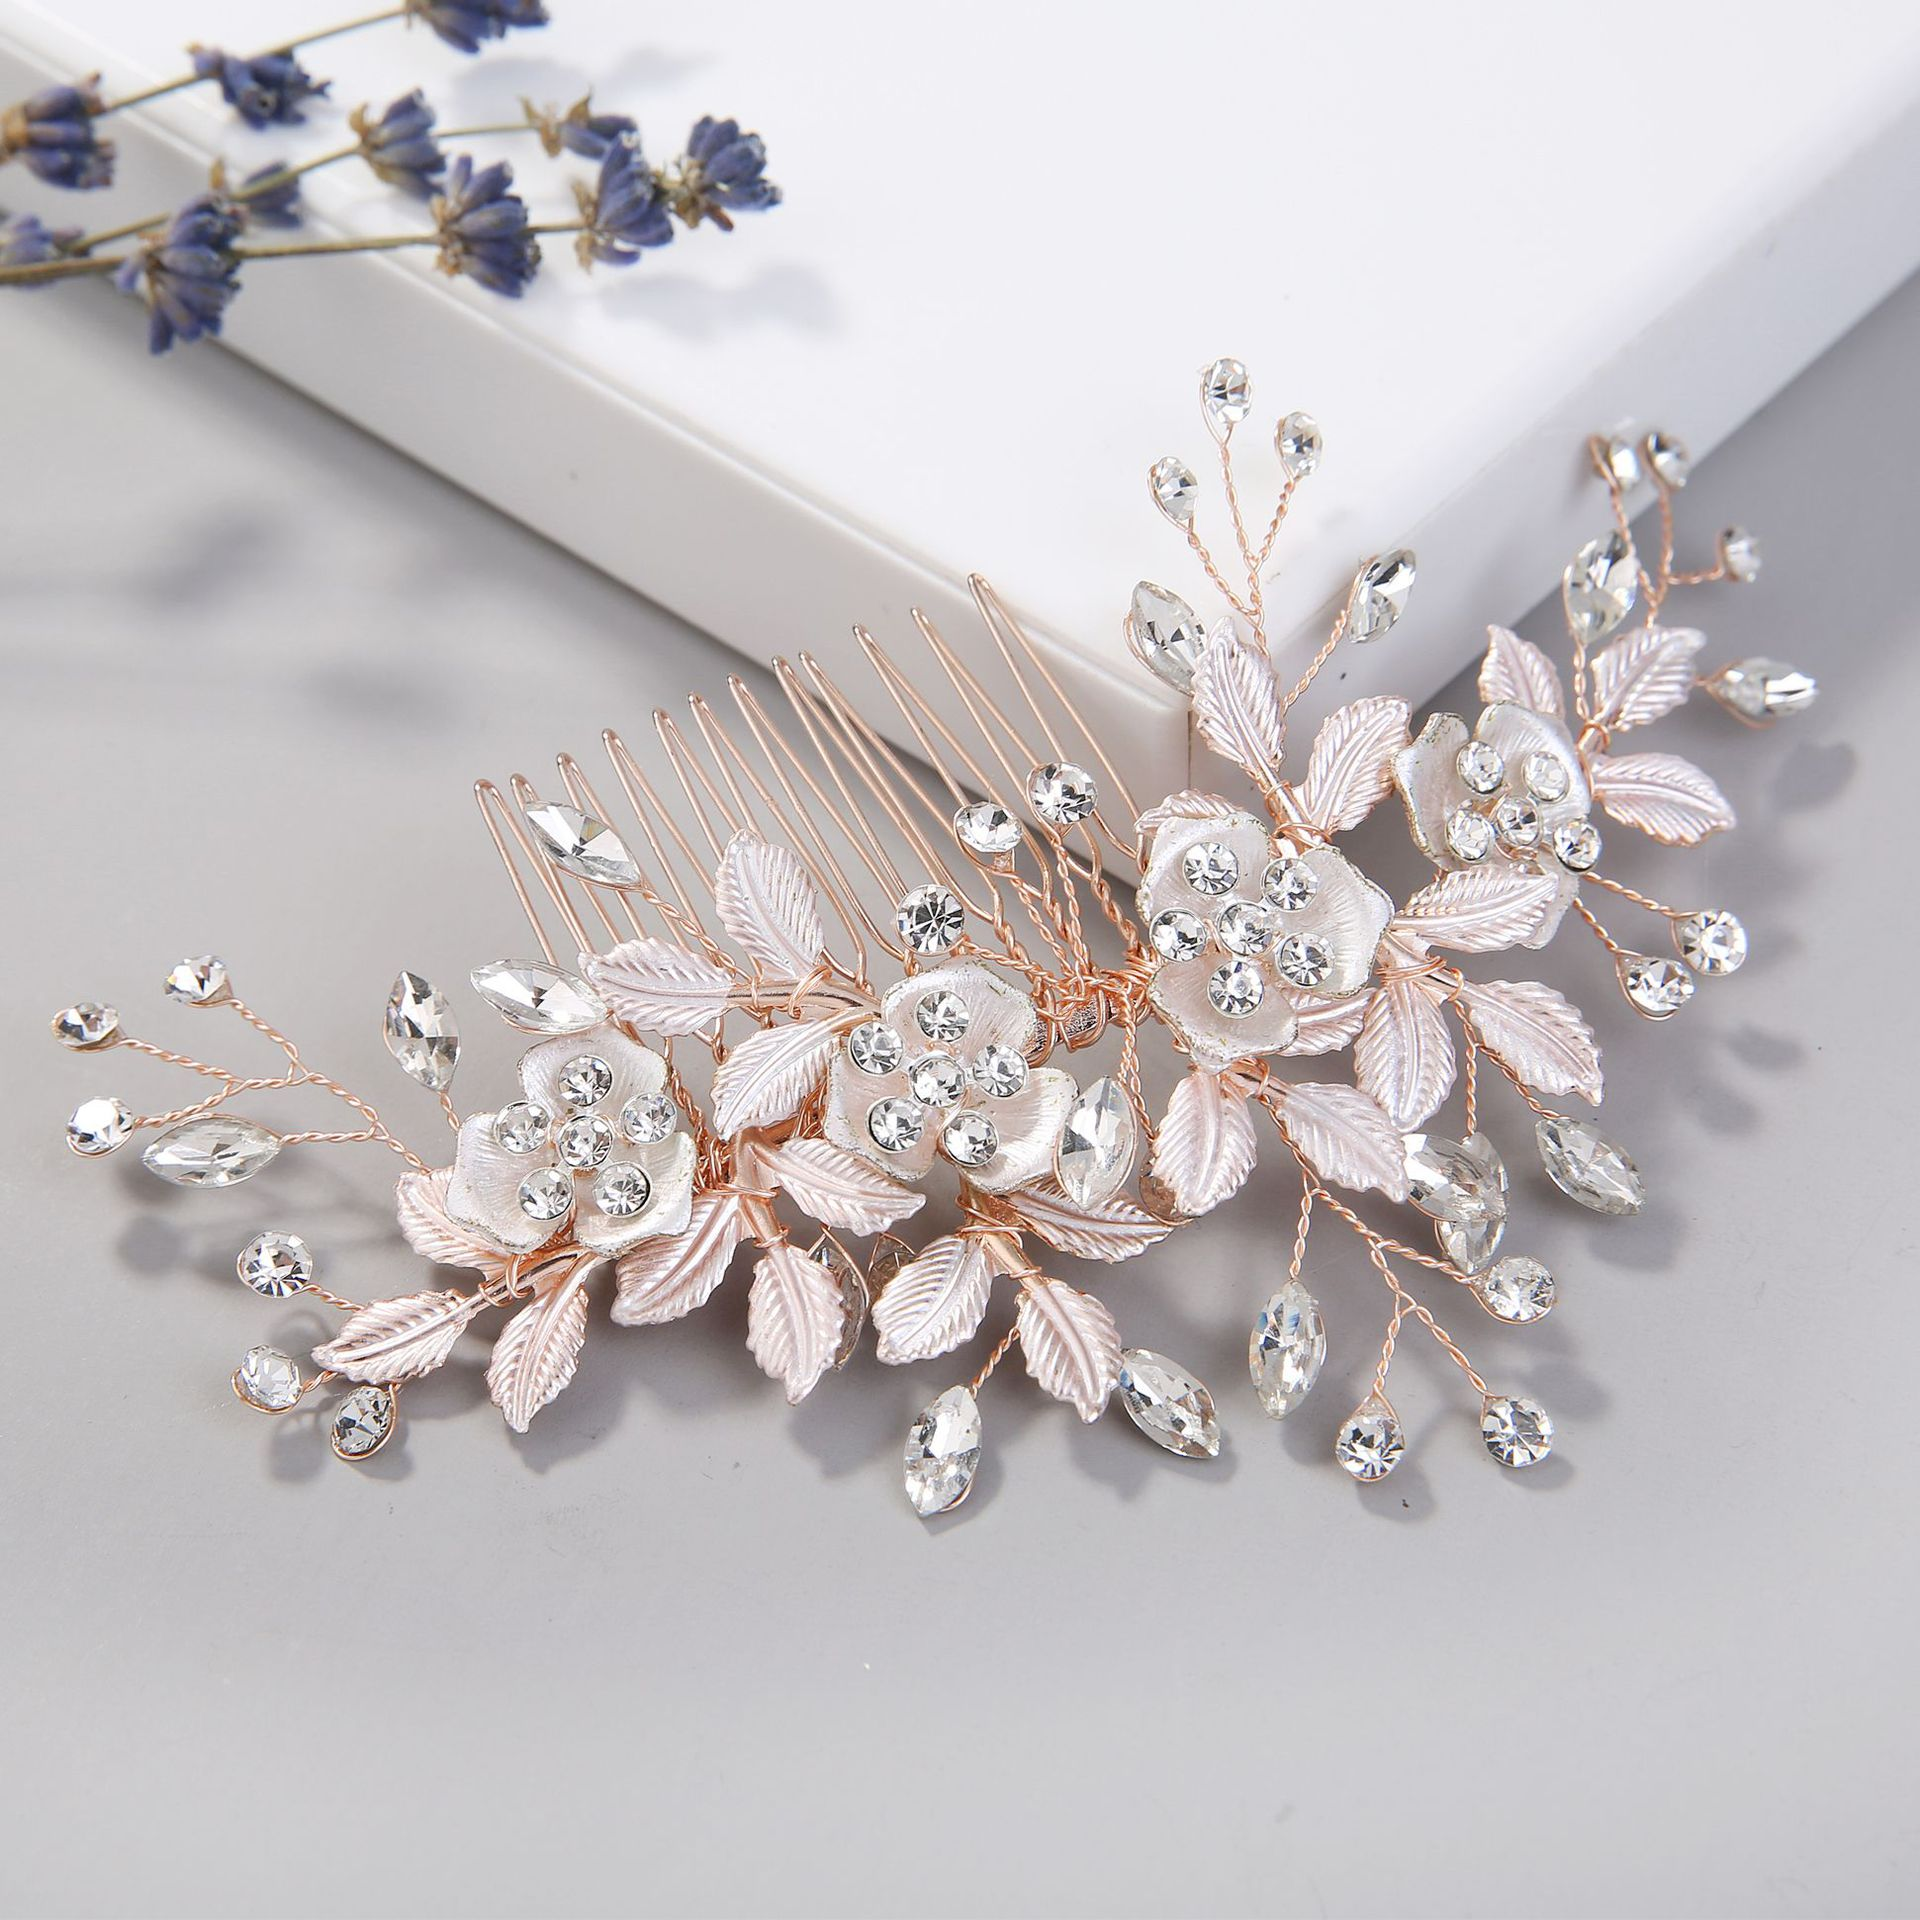 Bridal Headpiece Comb Barrettes Hair-Accessories Rose-Flower-Leaf Rhinestones Crystals